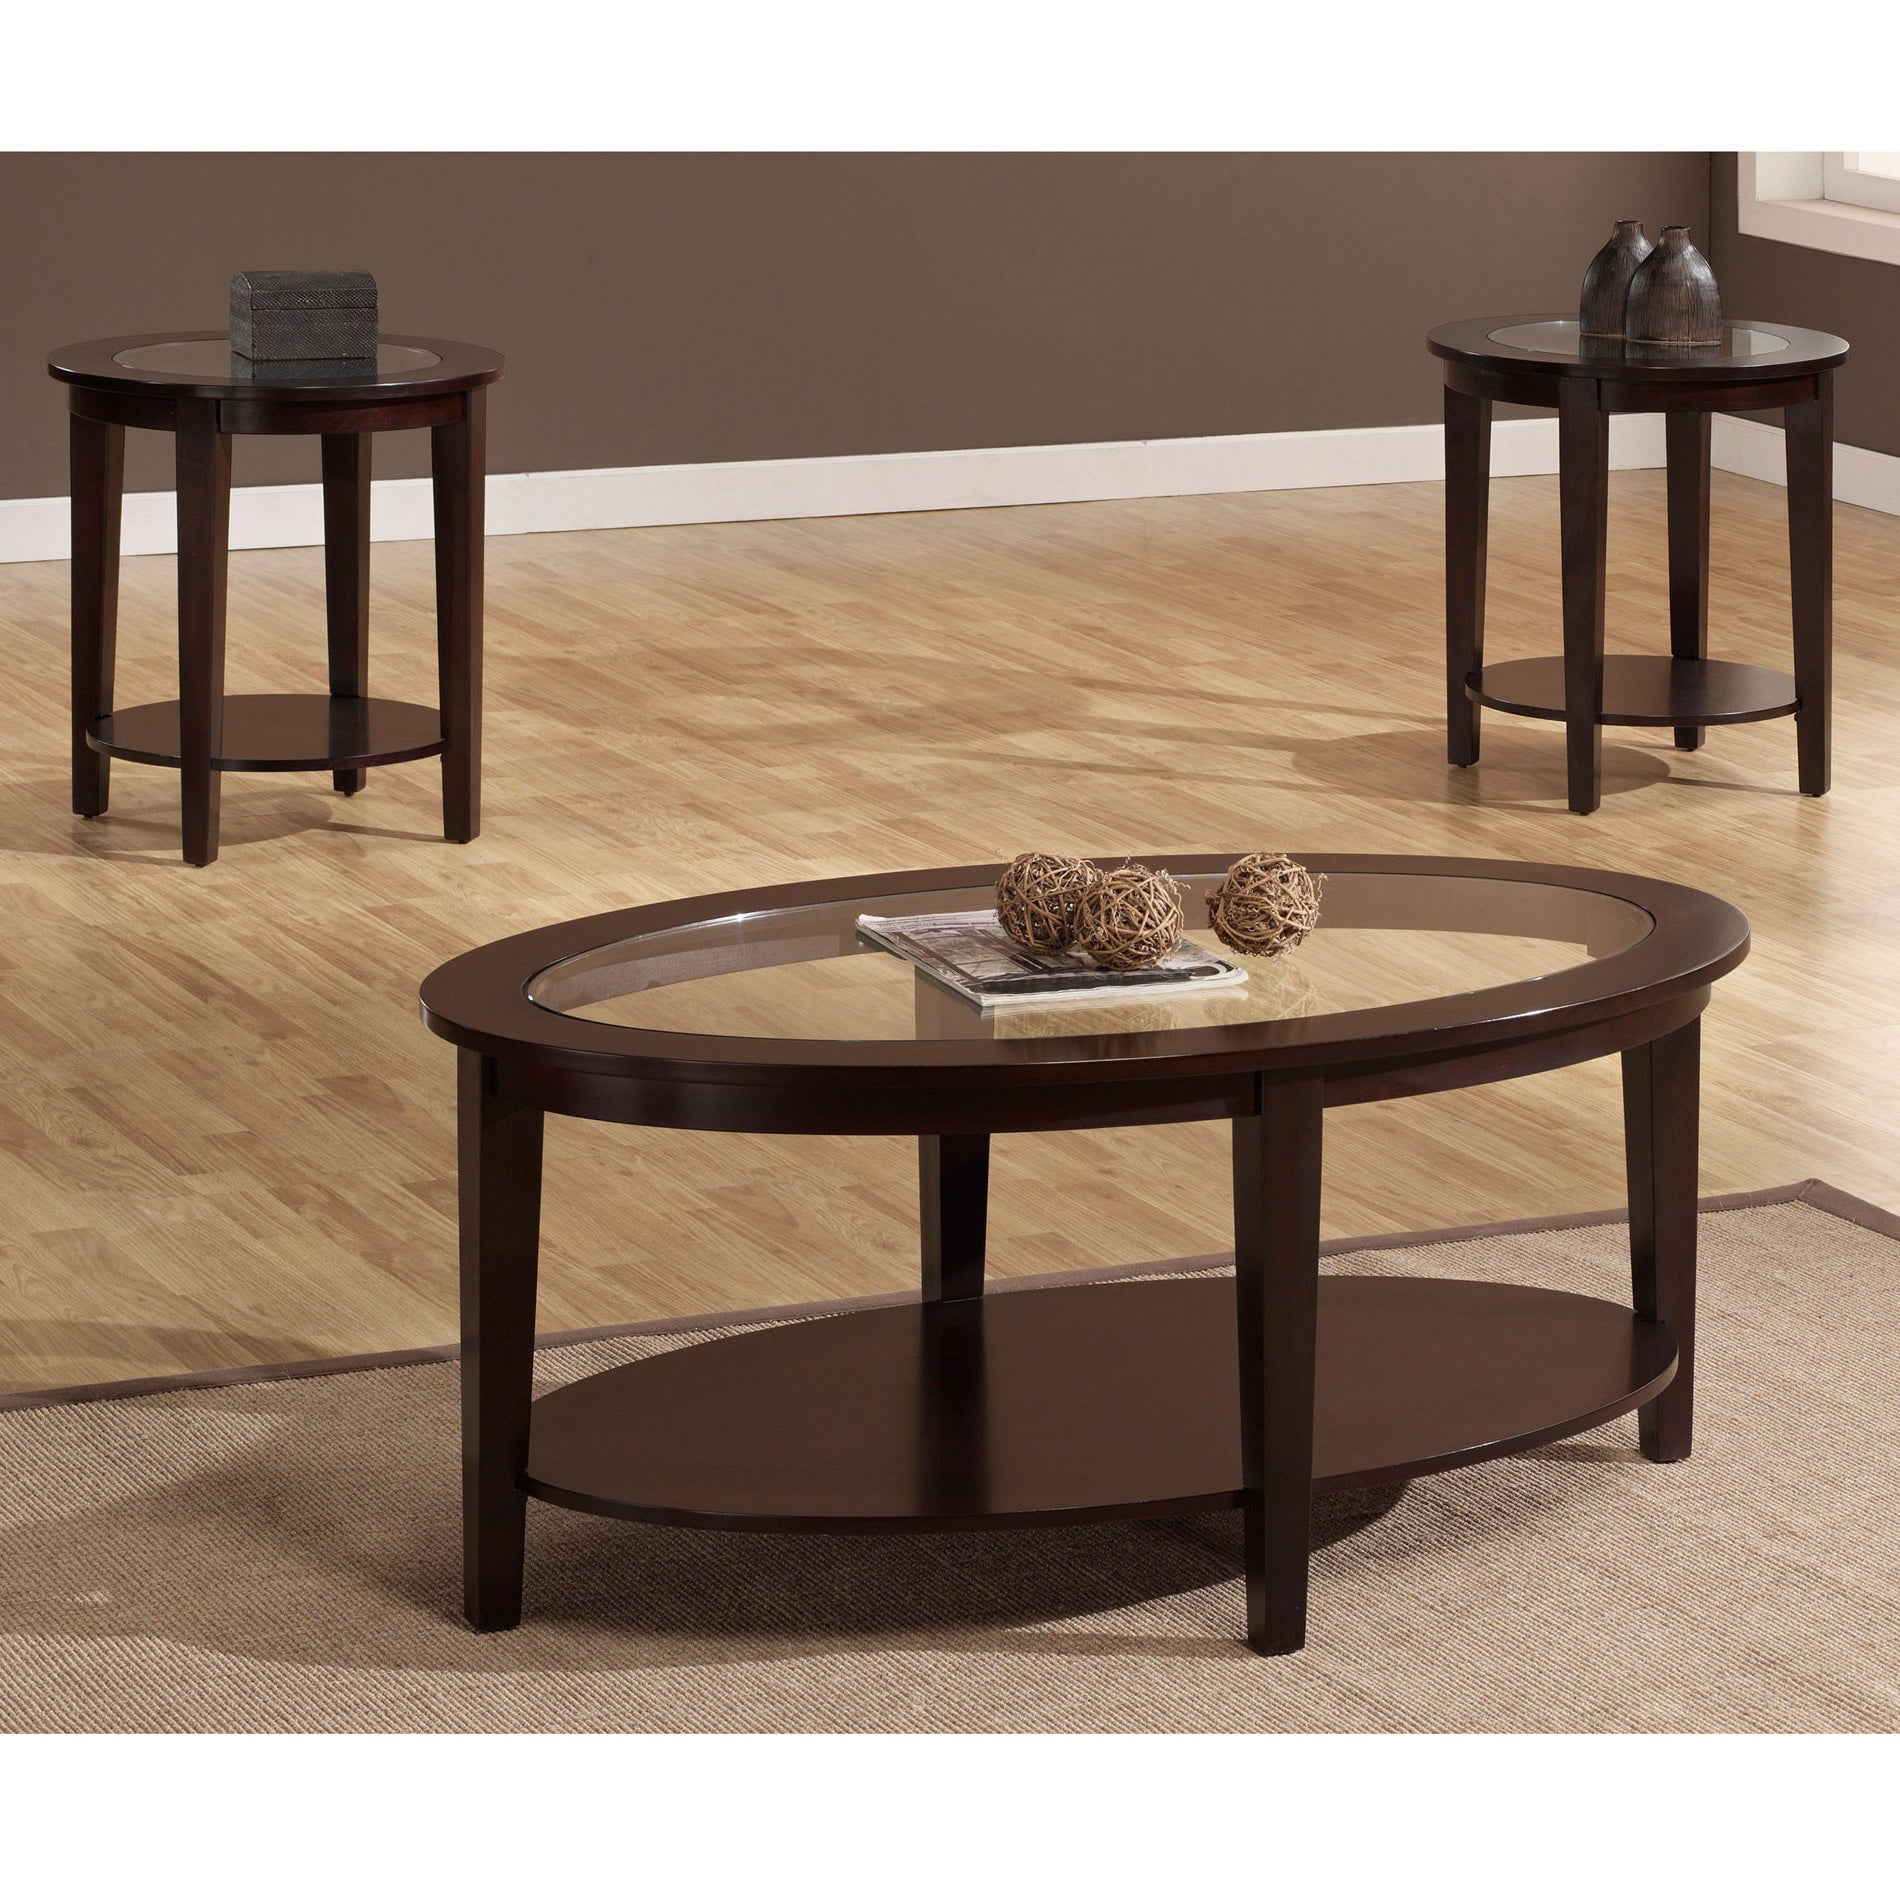 Gracewood Hollow Oval 3-piece Table Set - Free Shipping Today - Overstock - 13728081  sc 1 st  Overstock.com & Gracewood Hollow Oval 3-piece Table Set - Free Shipping Today ...